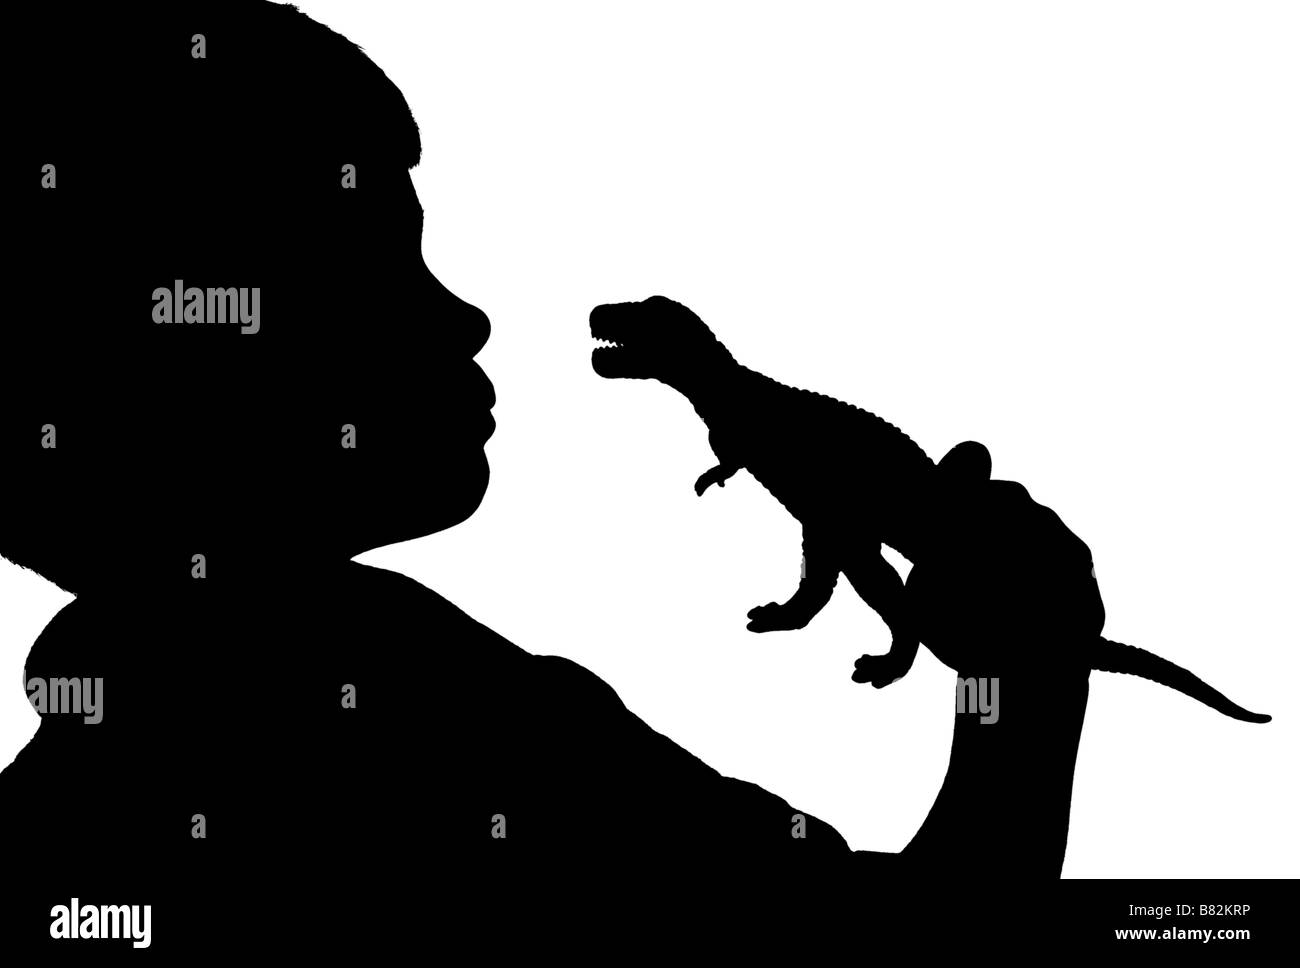 silhouette of boy looking at a dinosaur - Stock Image